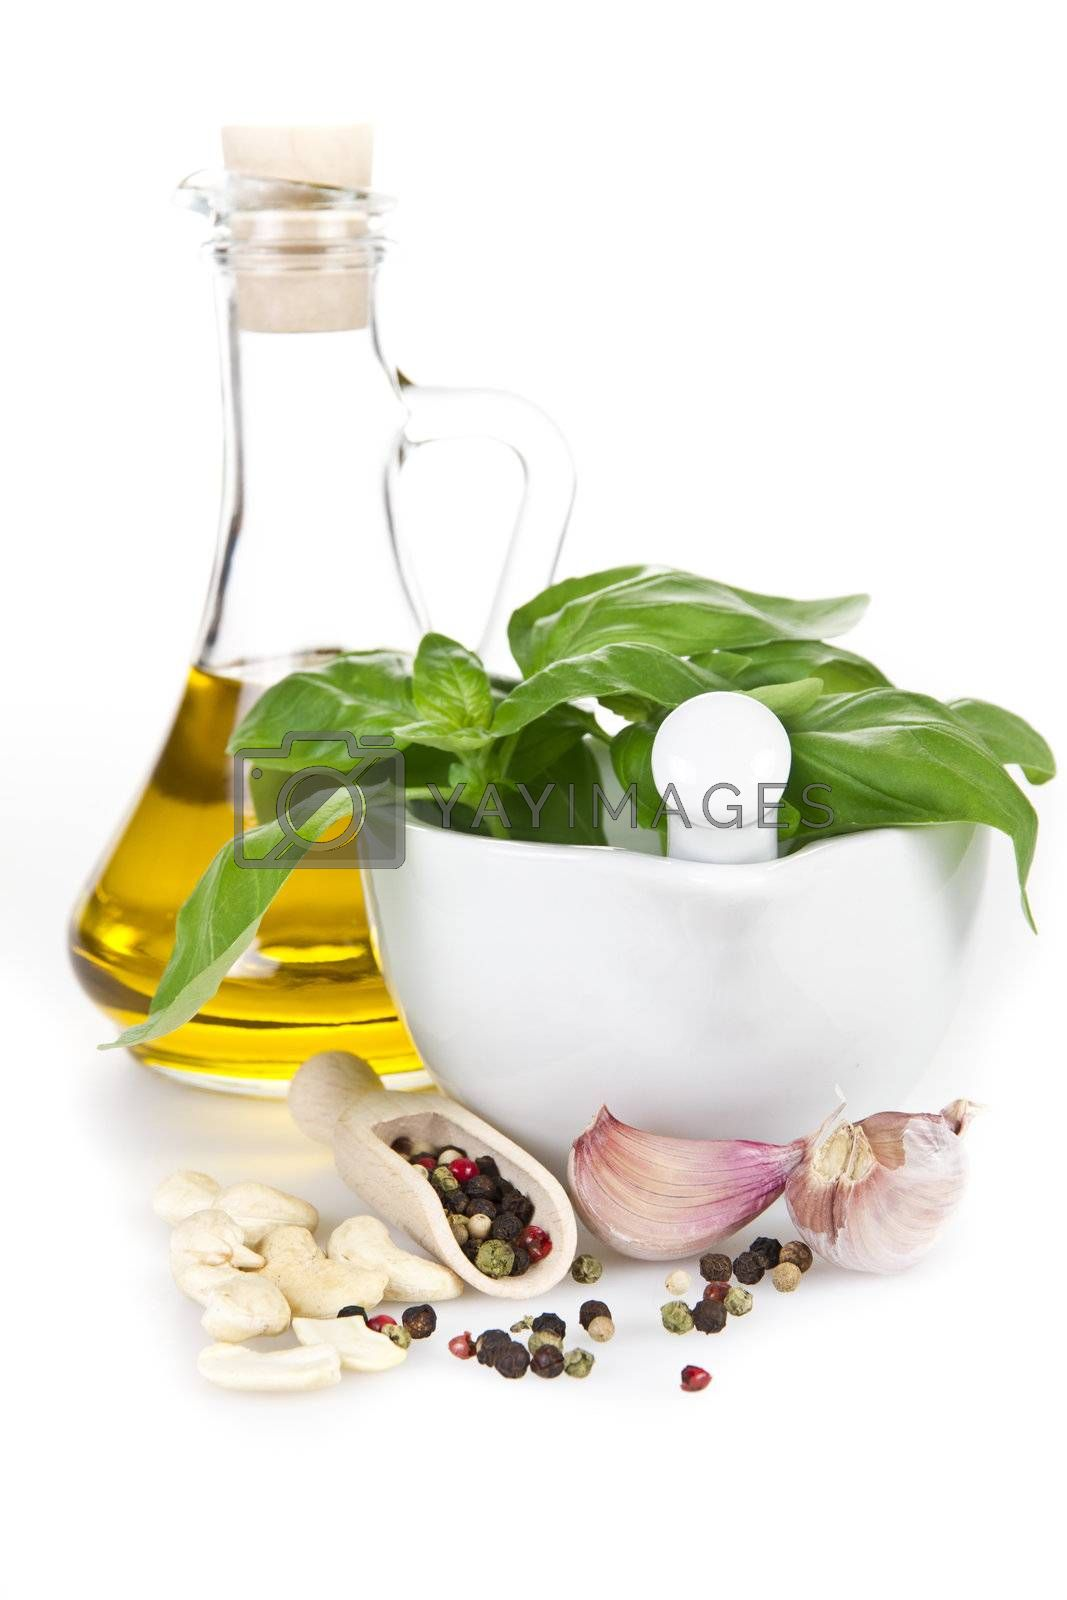 Pesto sauce ingredients over white backround